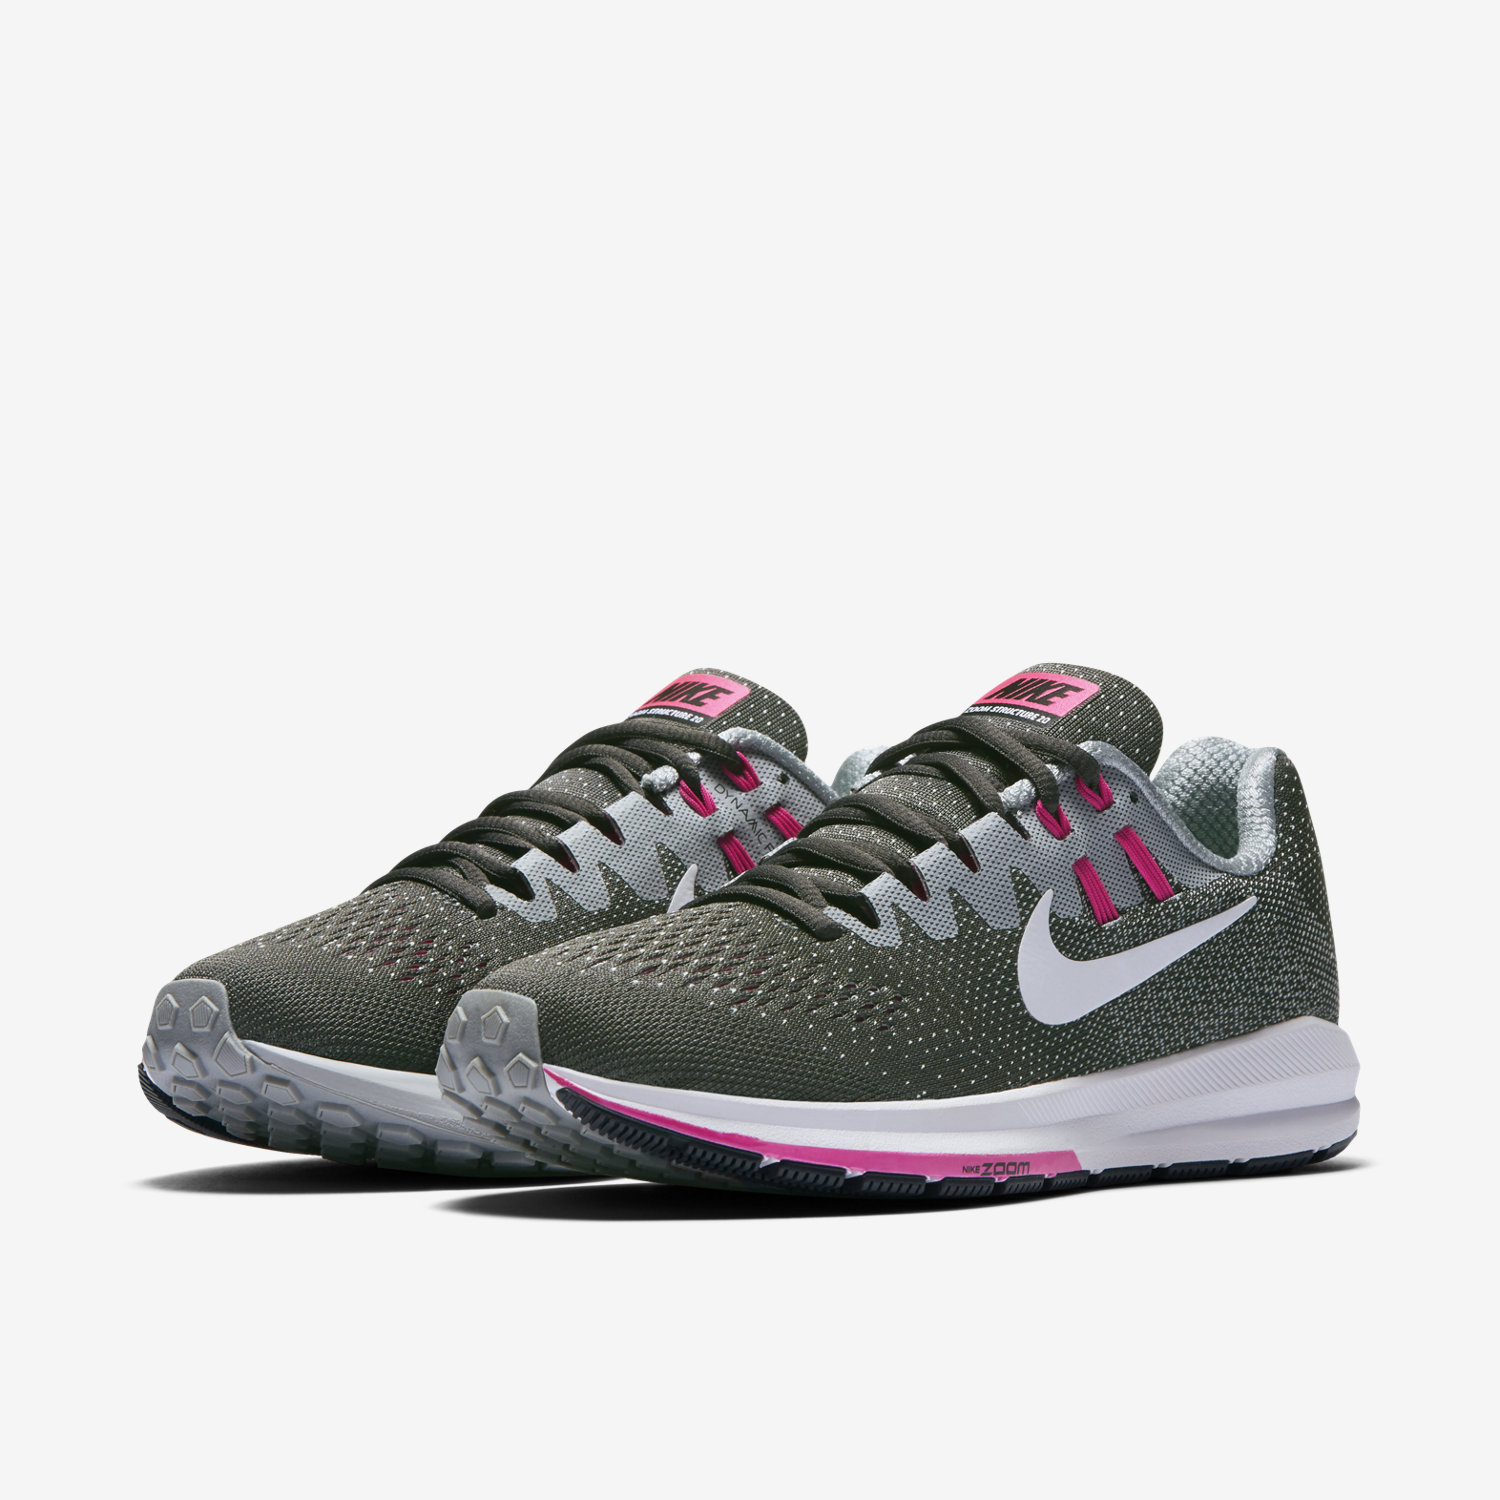 outlet store 55193 e9ac6 ... denmark nike zoom structure 19 womens sky blue pink . 47e4c 6f1ec